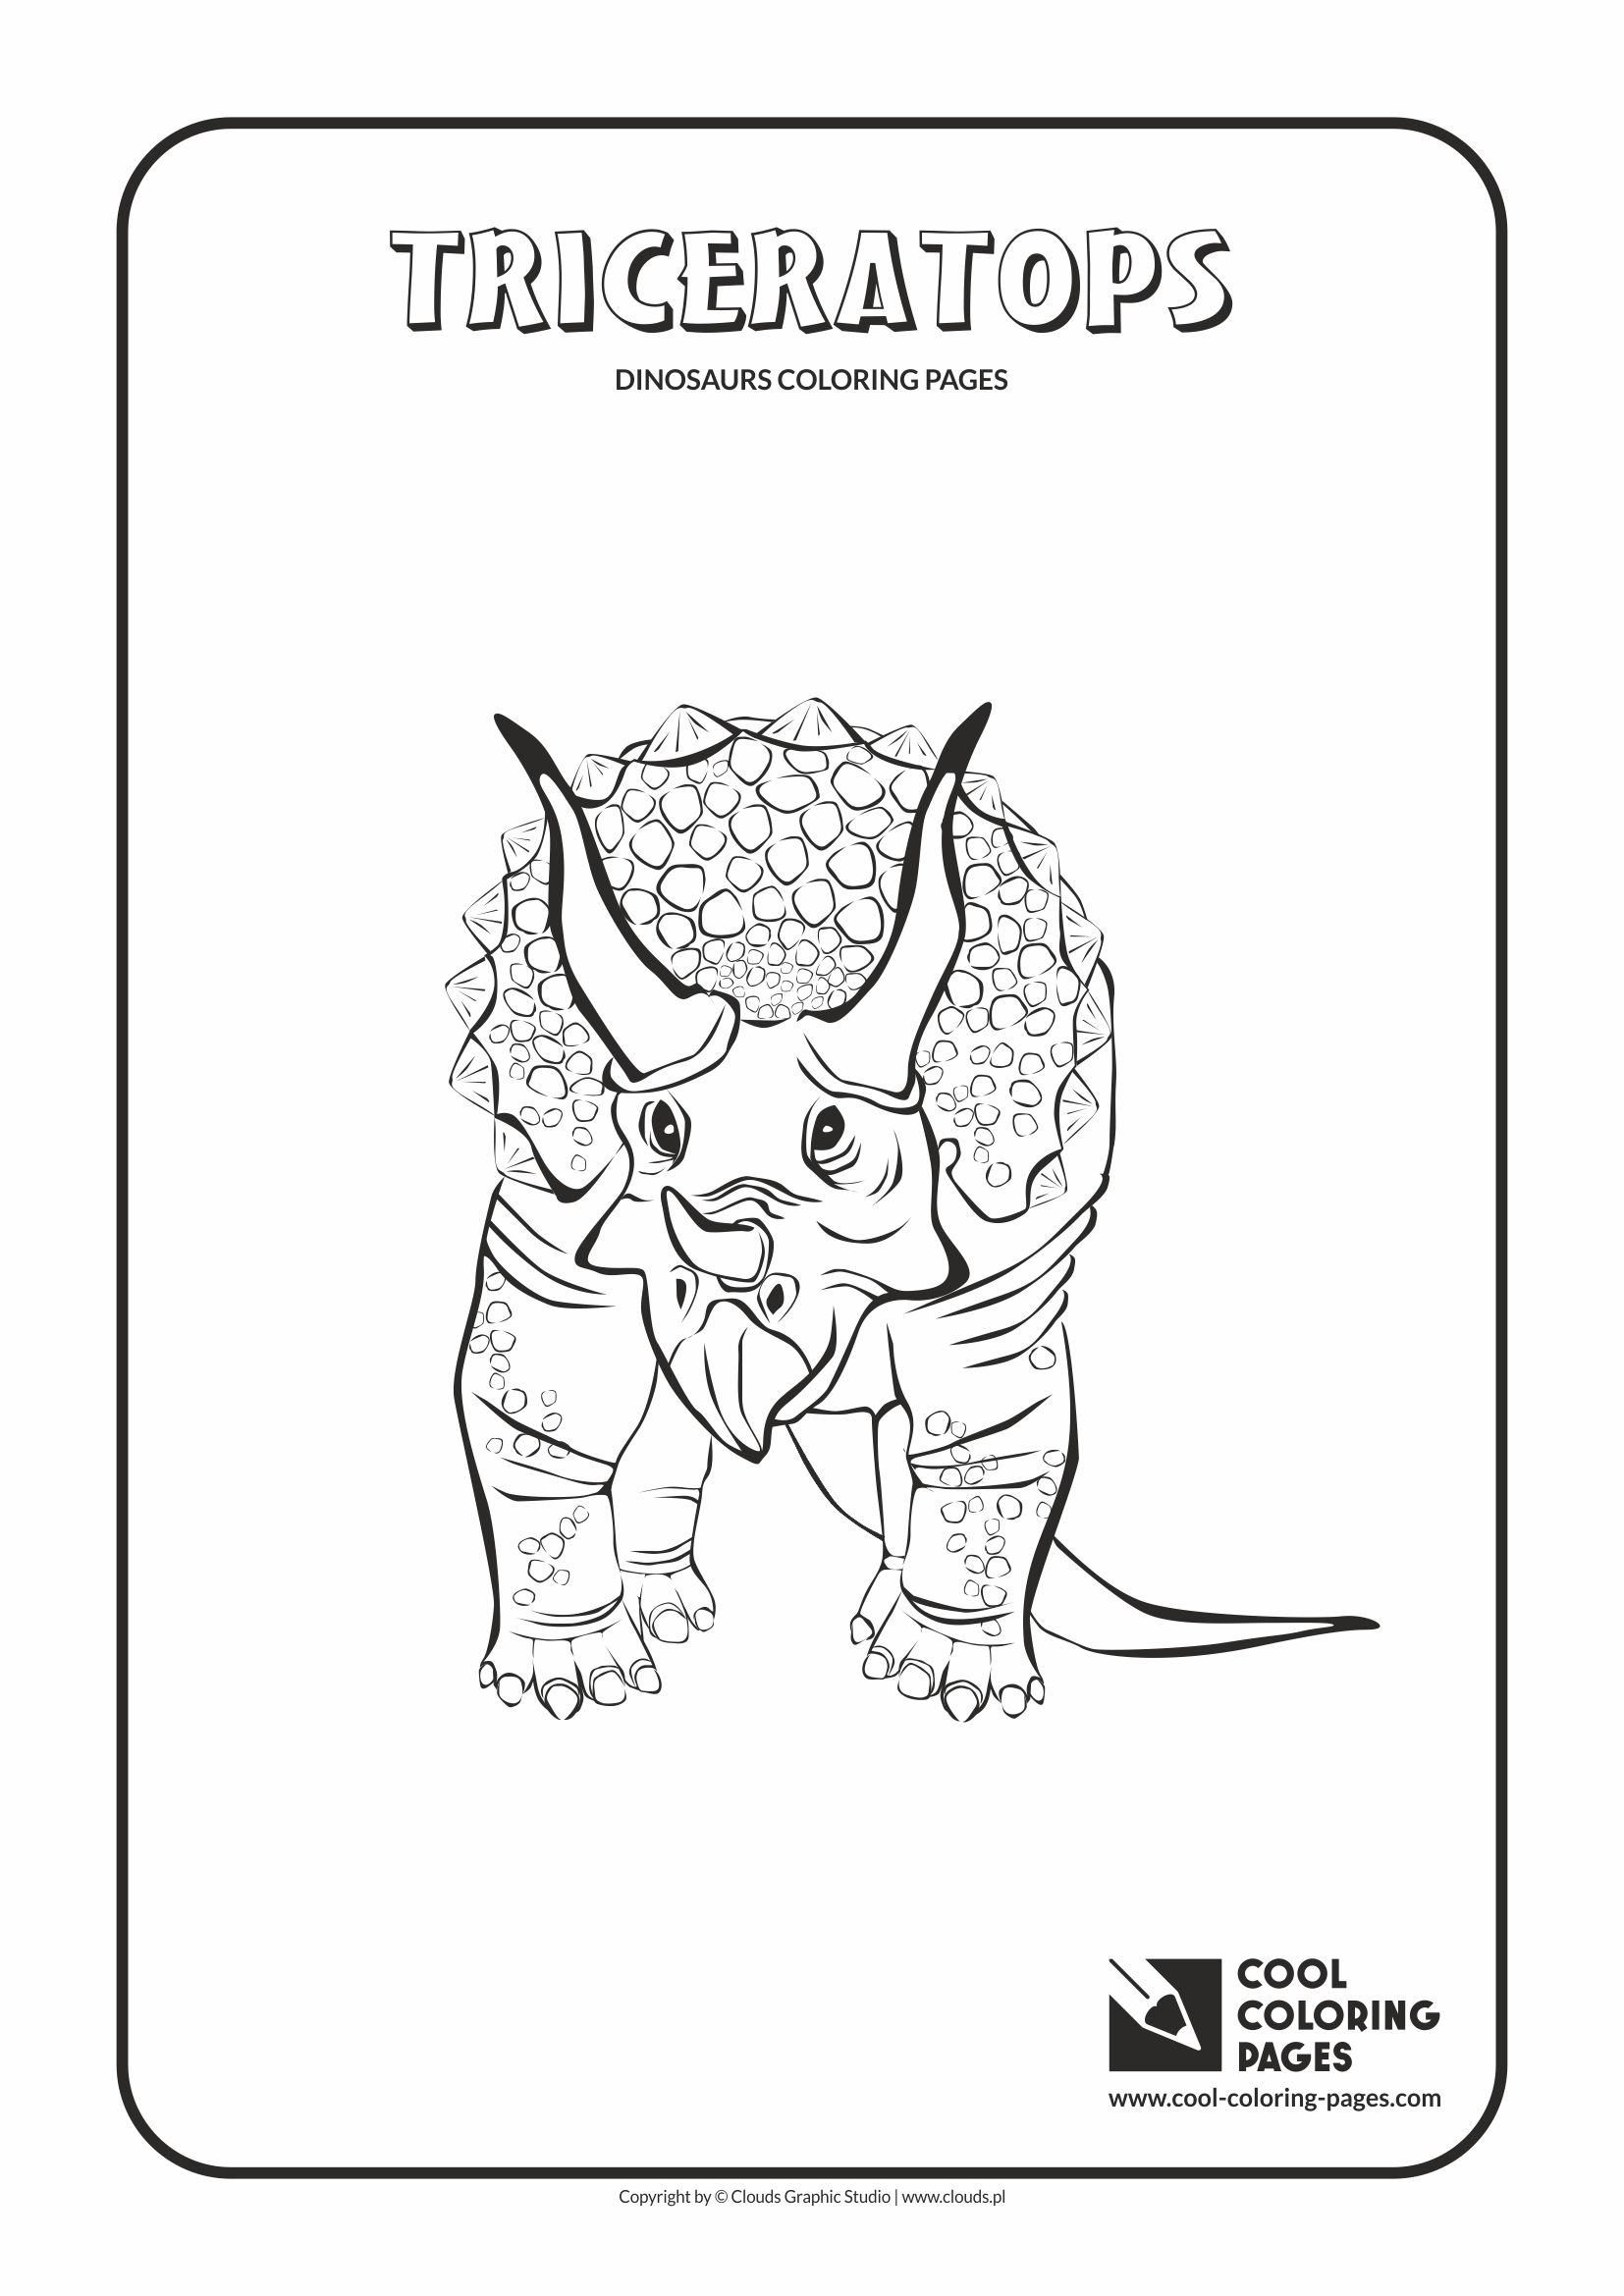 Cool Coloring Pages Dinosaurs Coloring Pages